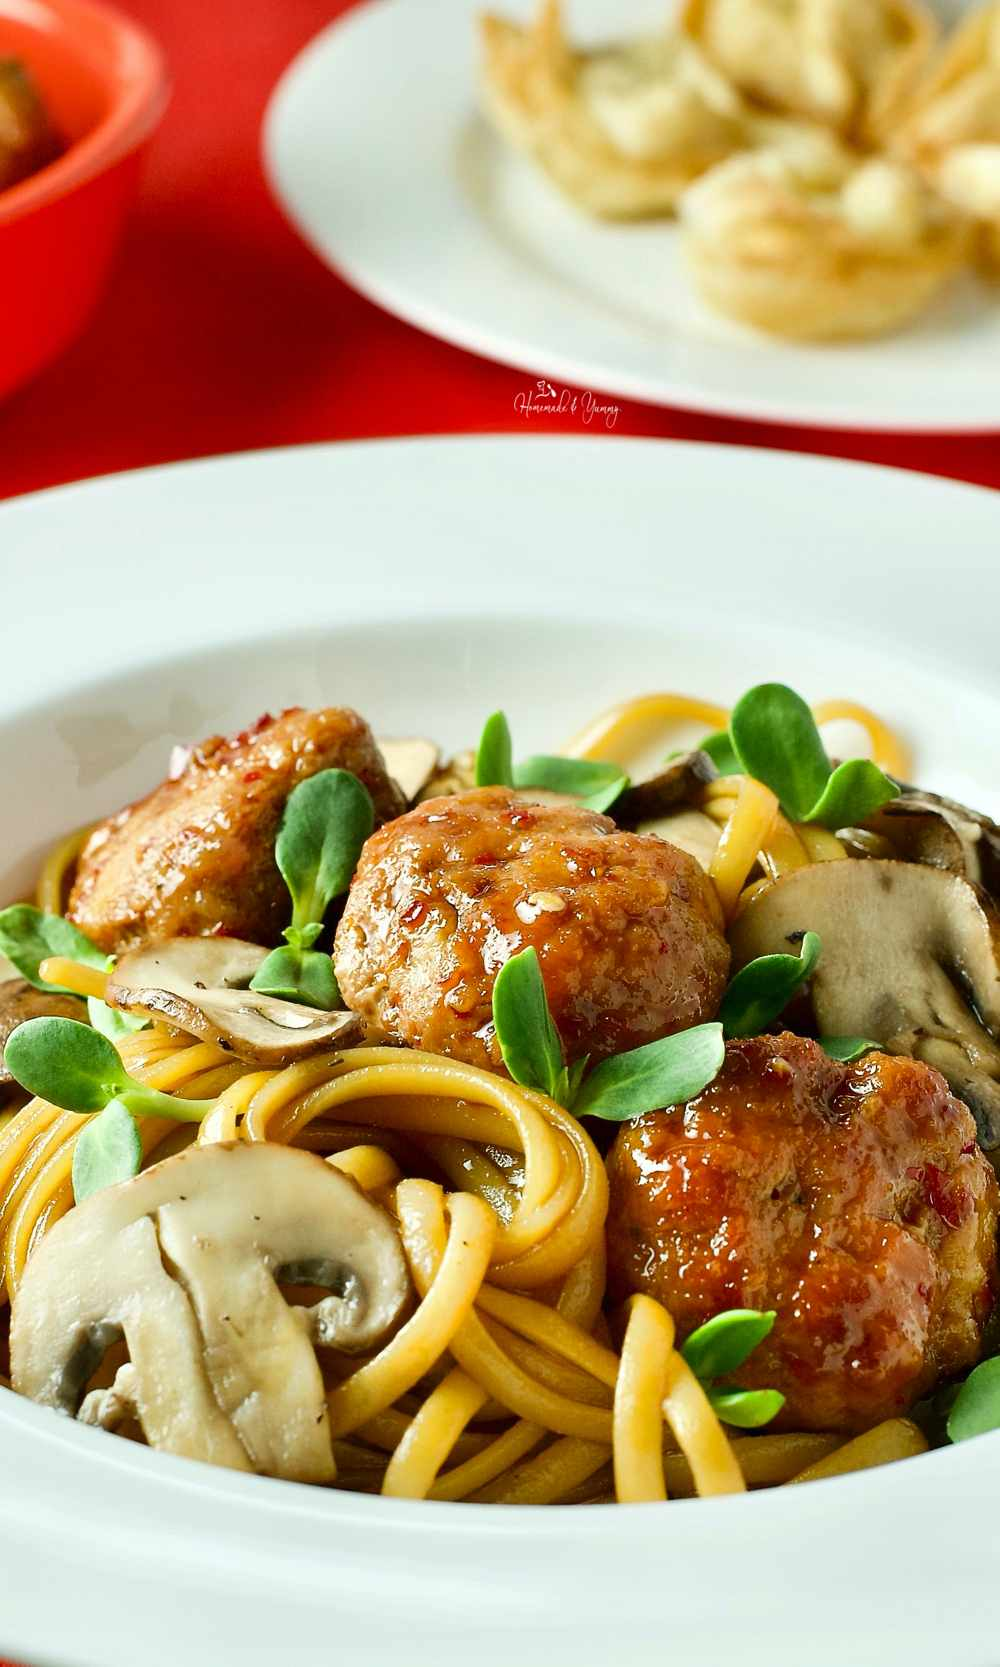 Asian spaghetti with pork meatballs in a bowl.